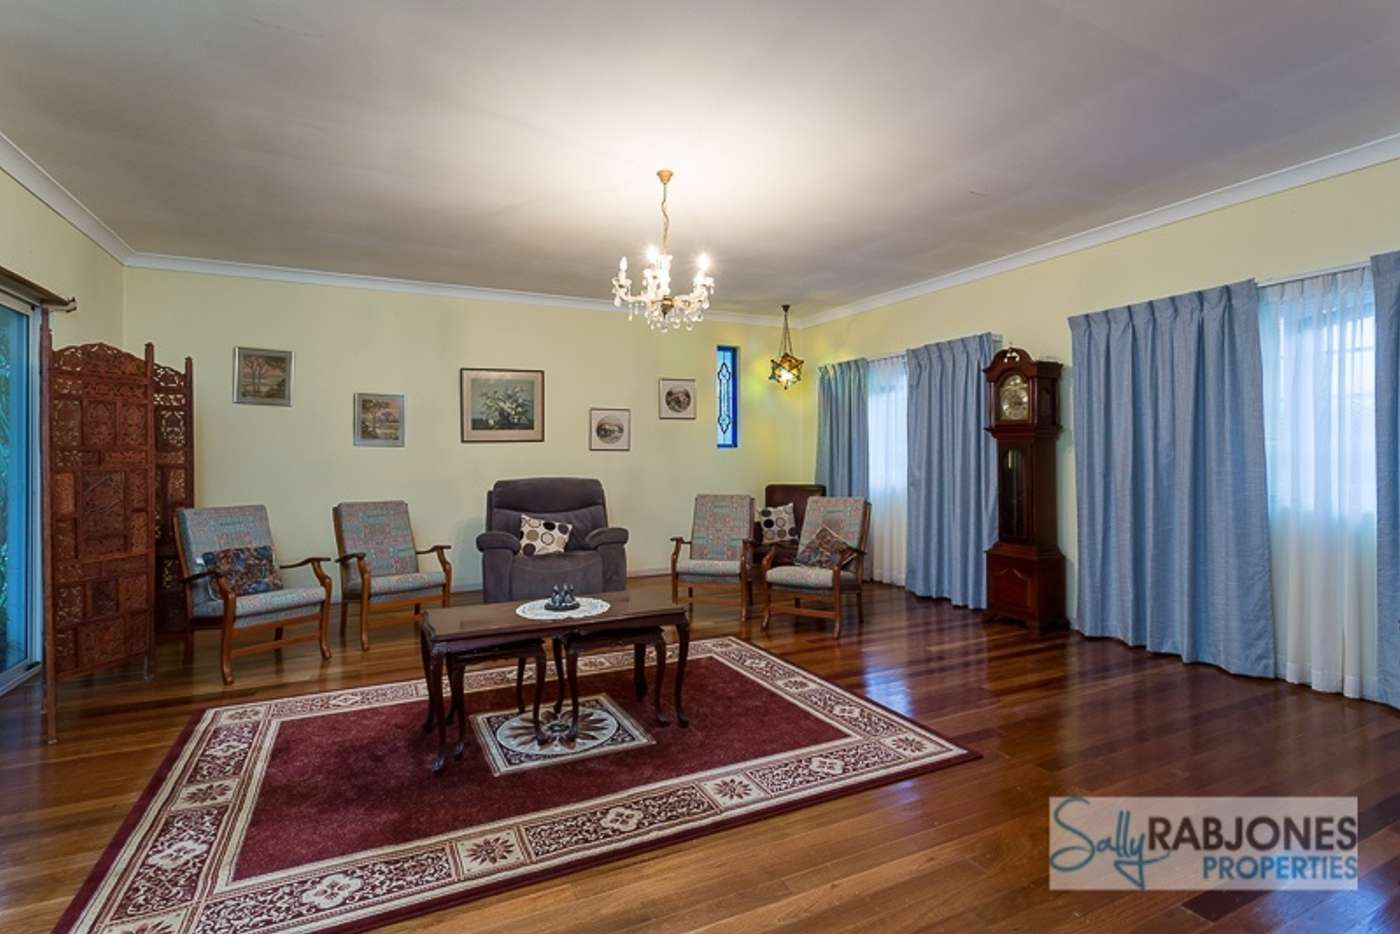 Main view of Homely house listing, 29-31 Clive Road, Birkdale QLD 4159